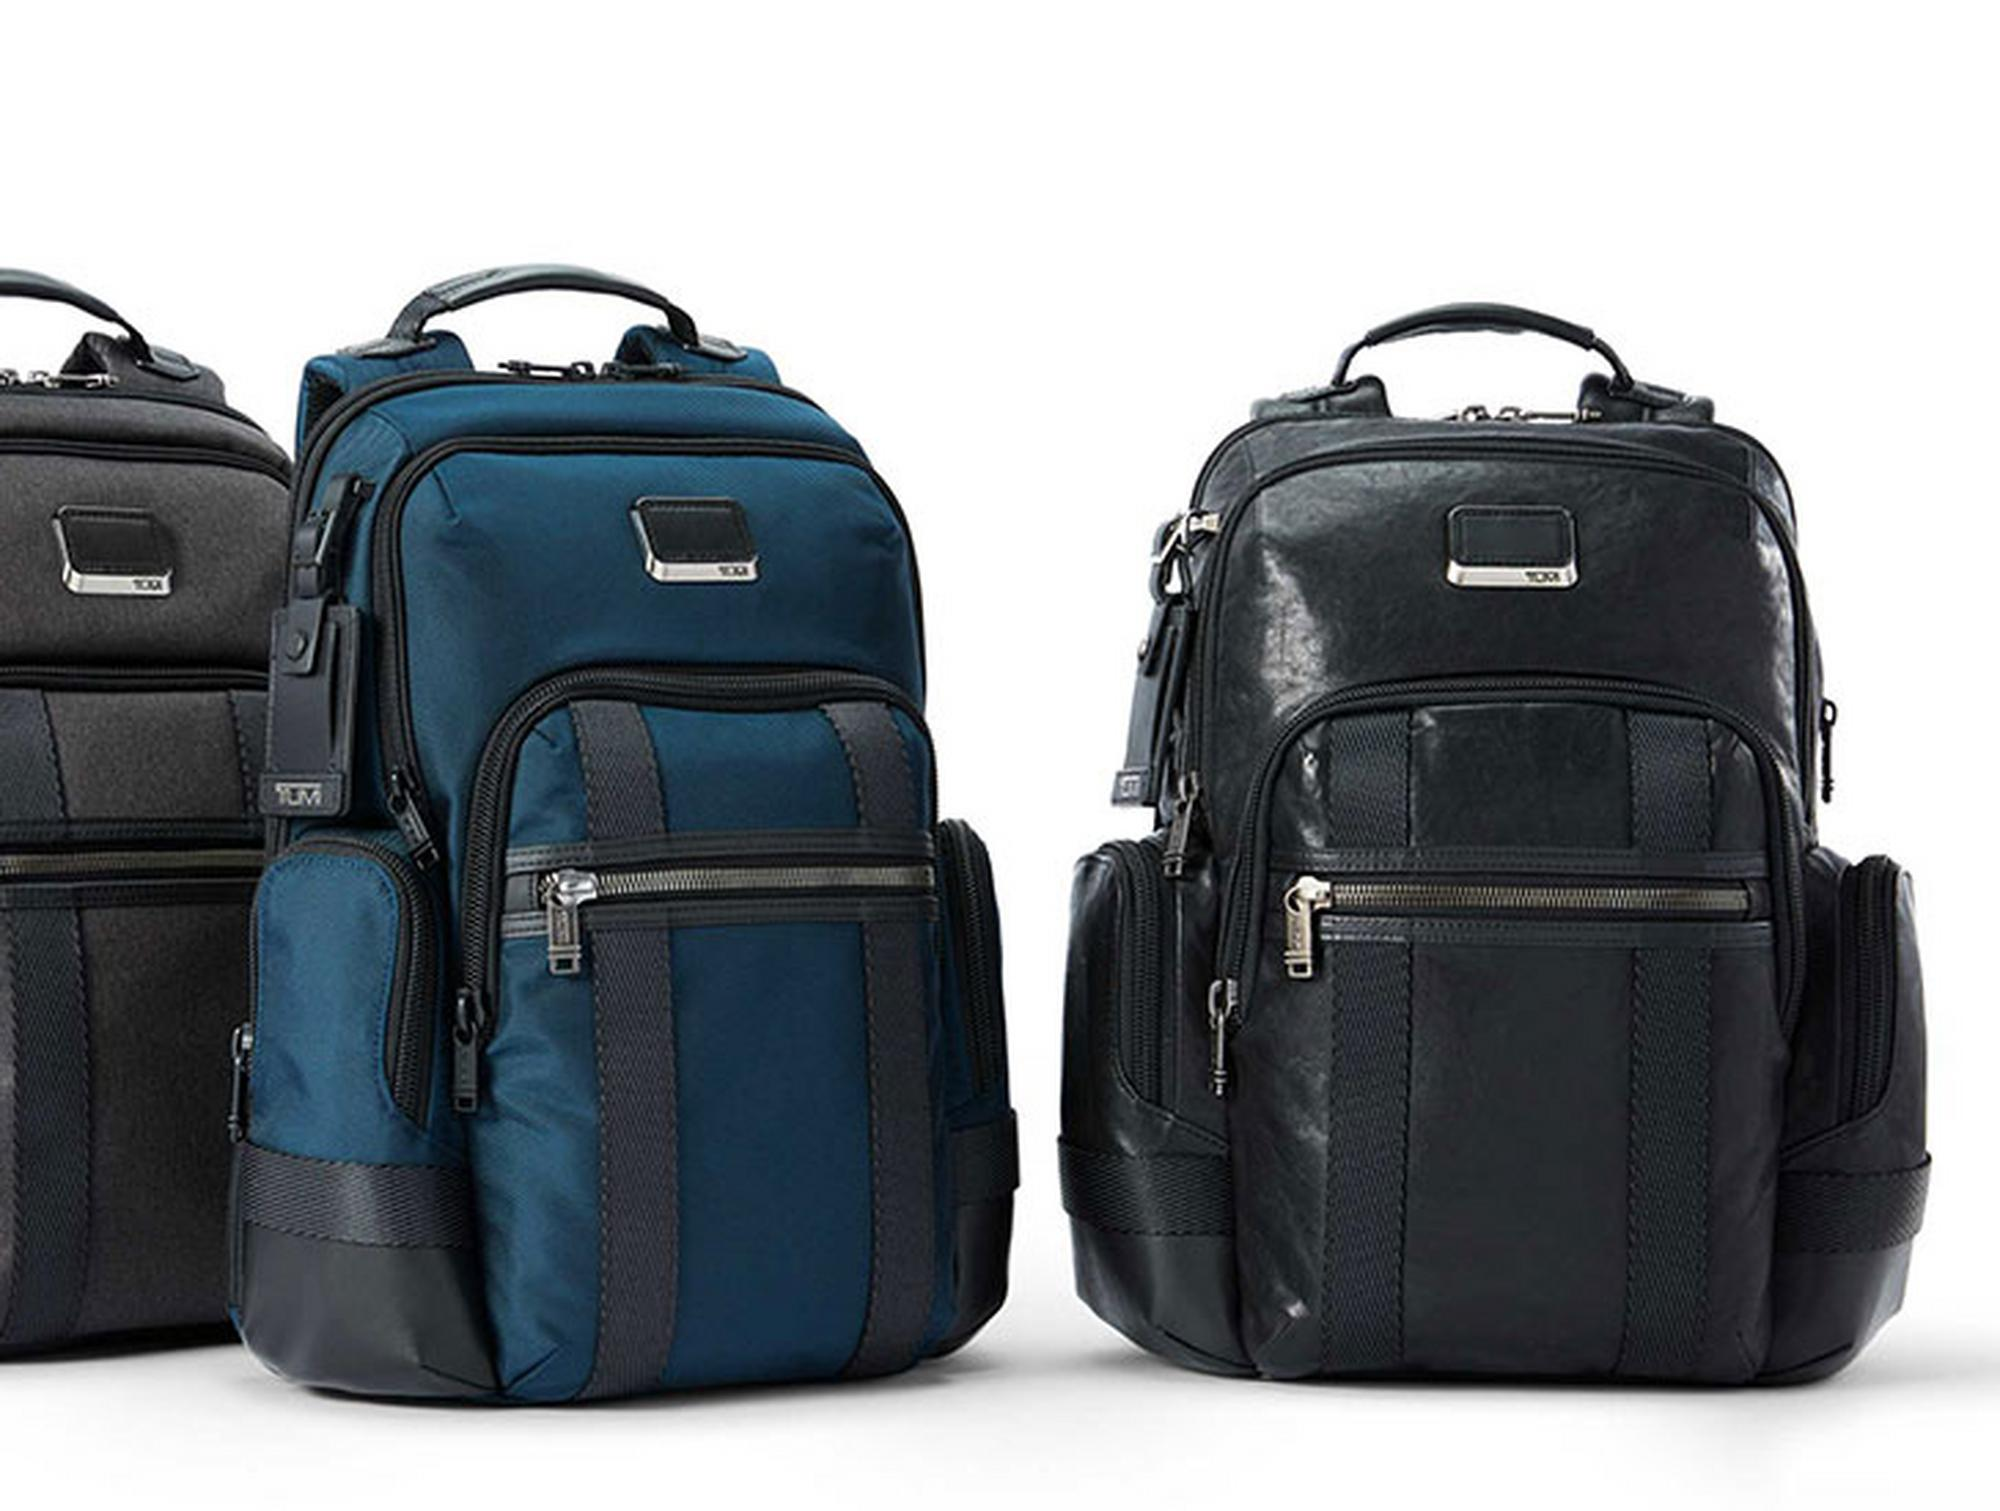 d75d85a32 Luggage, Backpacks, Bags & More - TUMI US